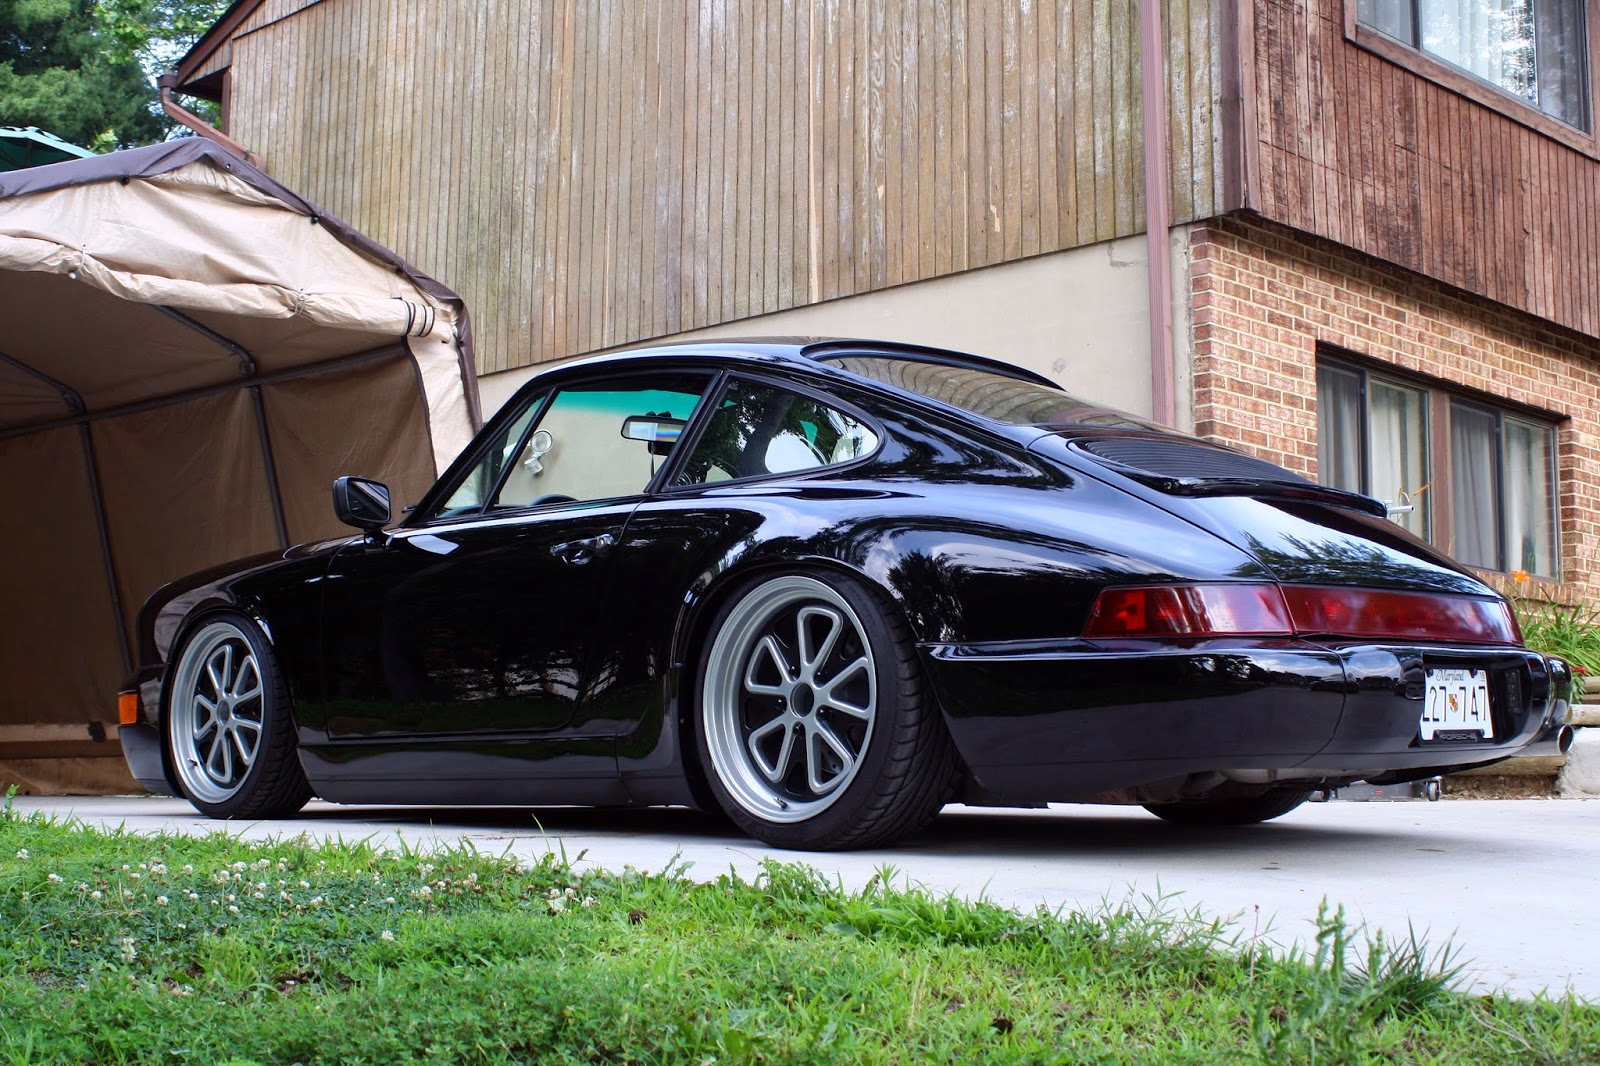 magnuswalker911 outlaw wheels first customer set installed. Black Bedroom Furniture Sets. Home Design Ideas